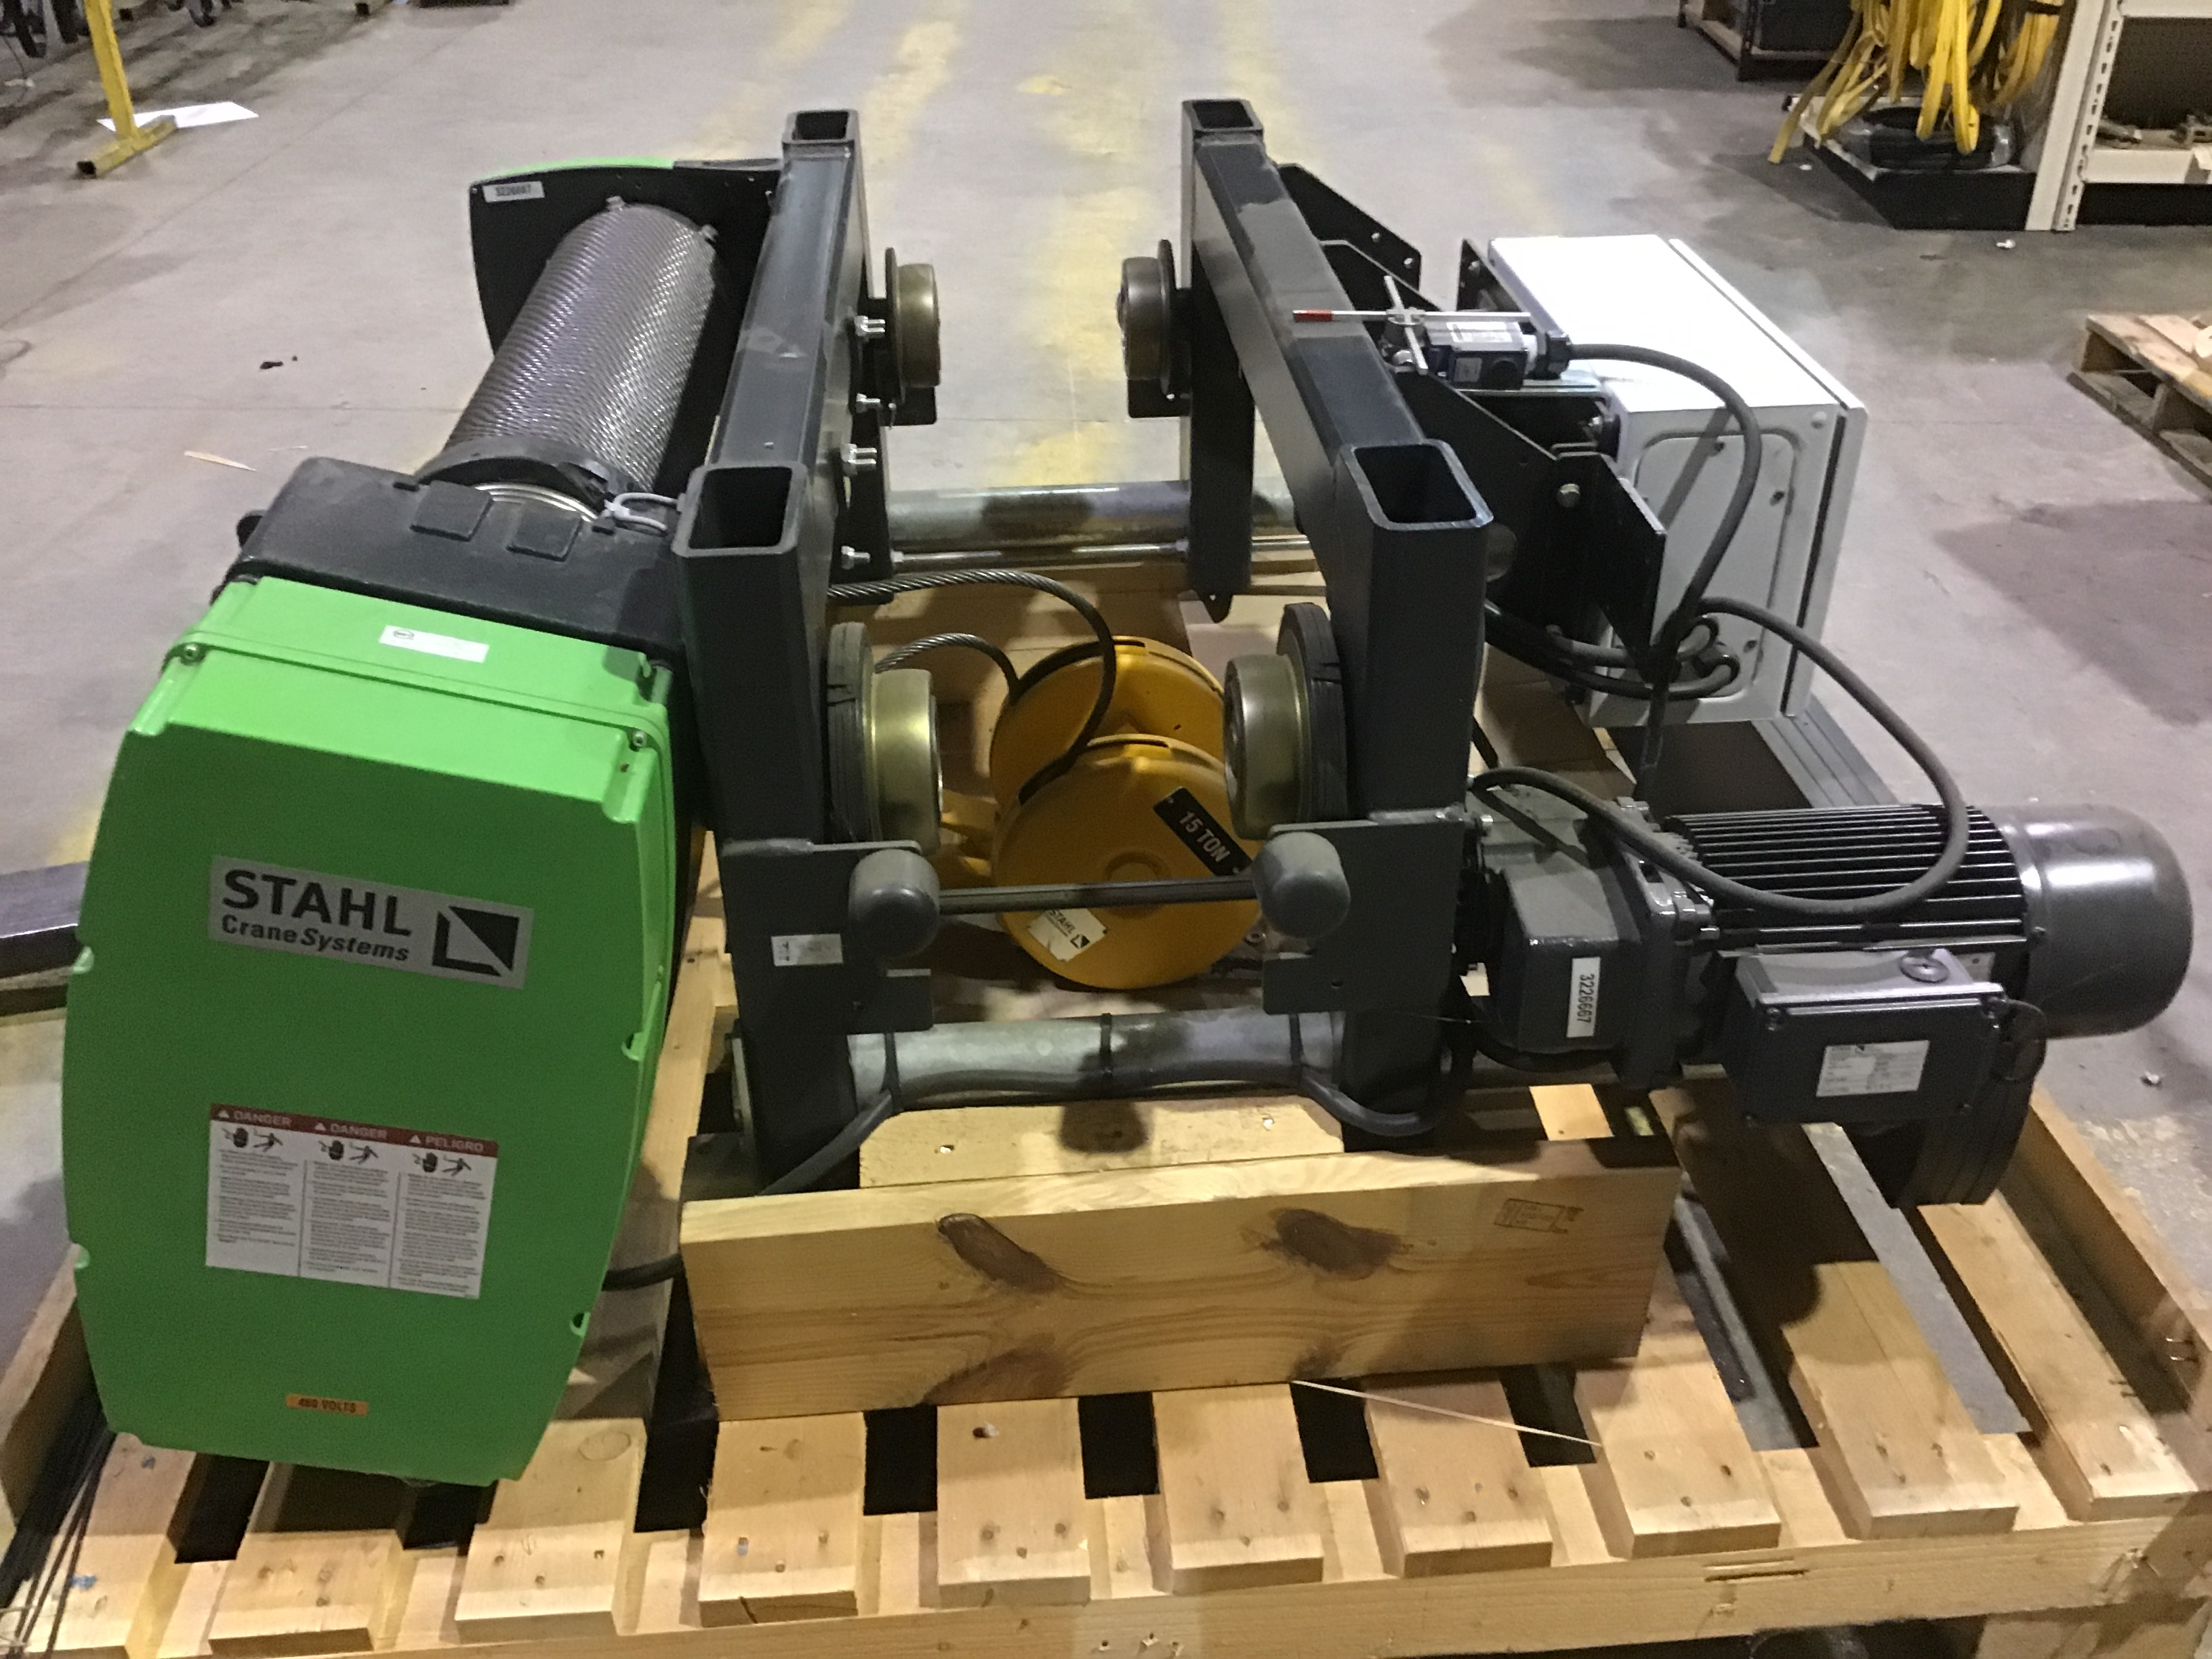 For Sale: Stahl Crane Systems 15 Ton Capacity Electric Wire Rope Hoist with Single Girder, Close Headroom, Underhung Trolley